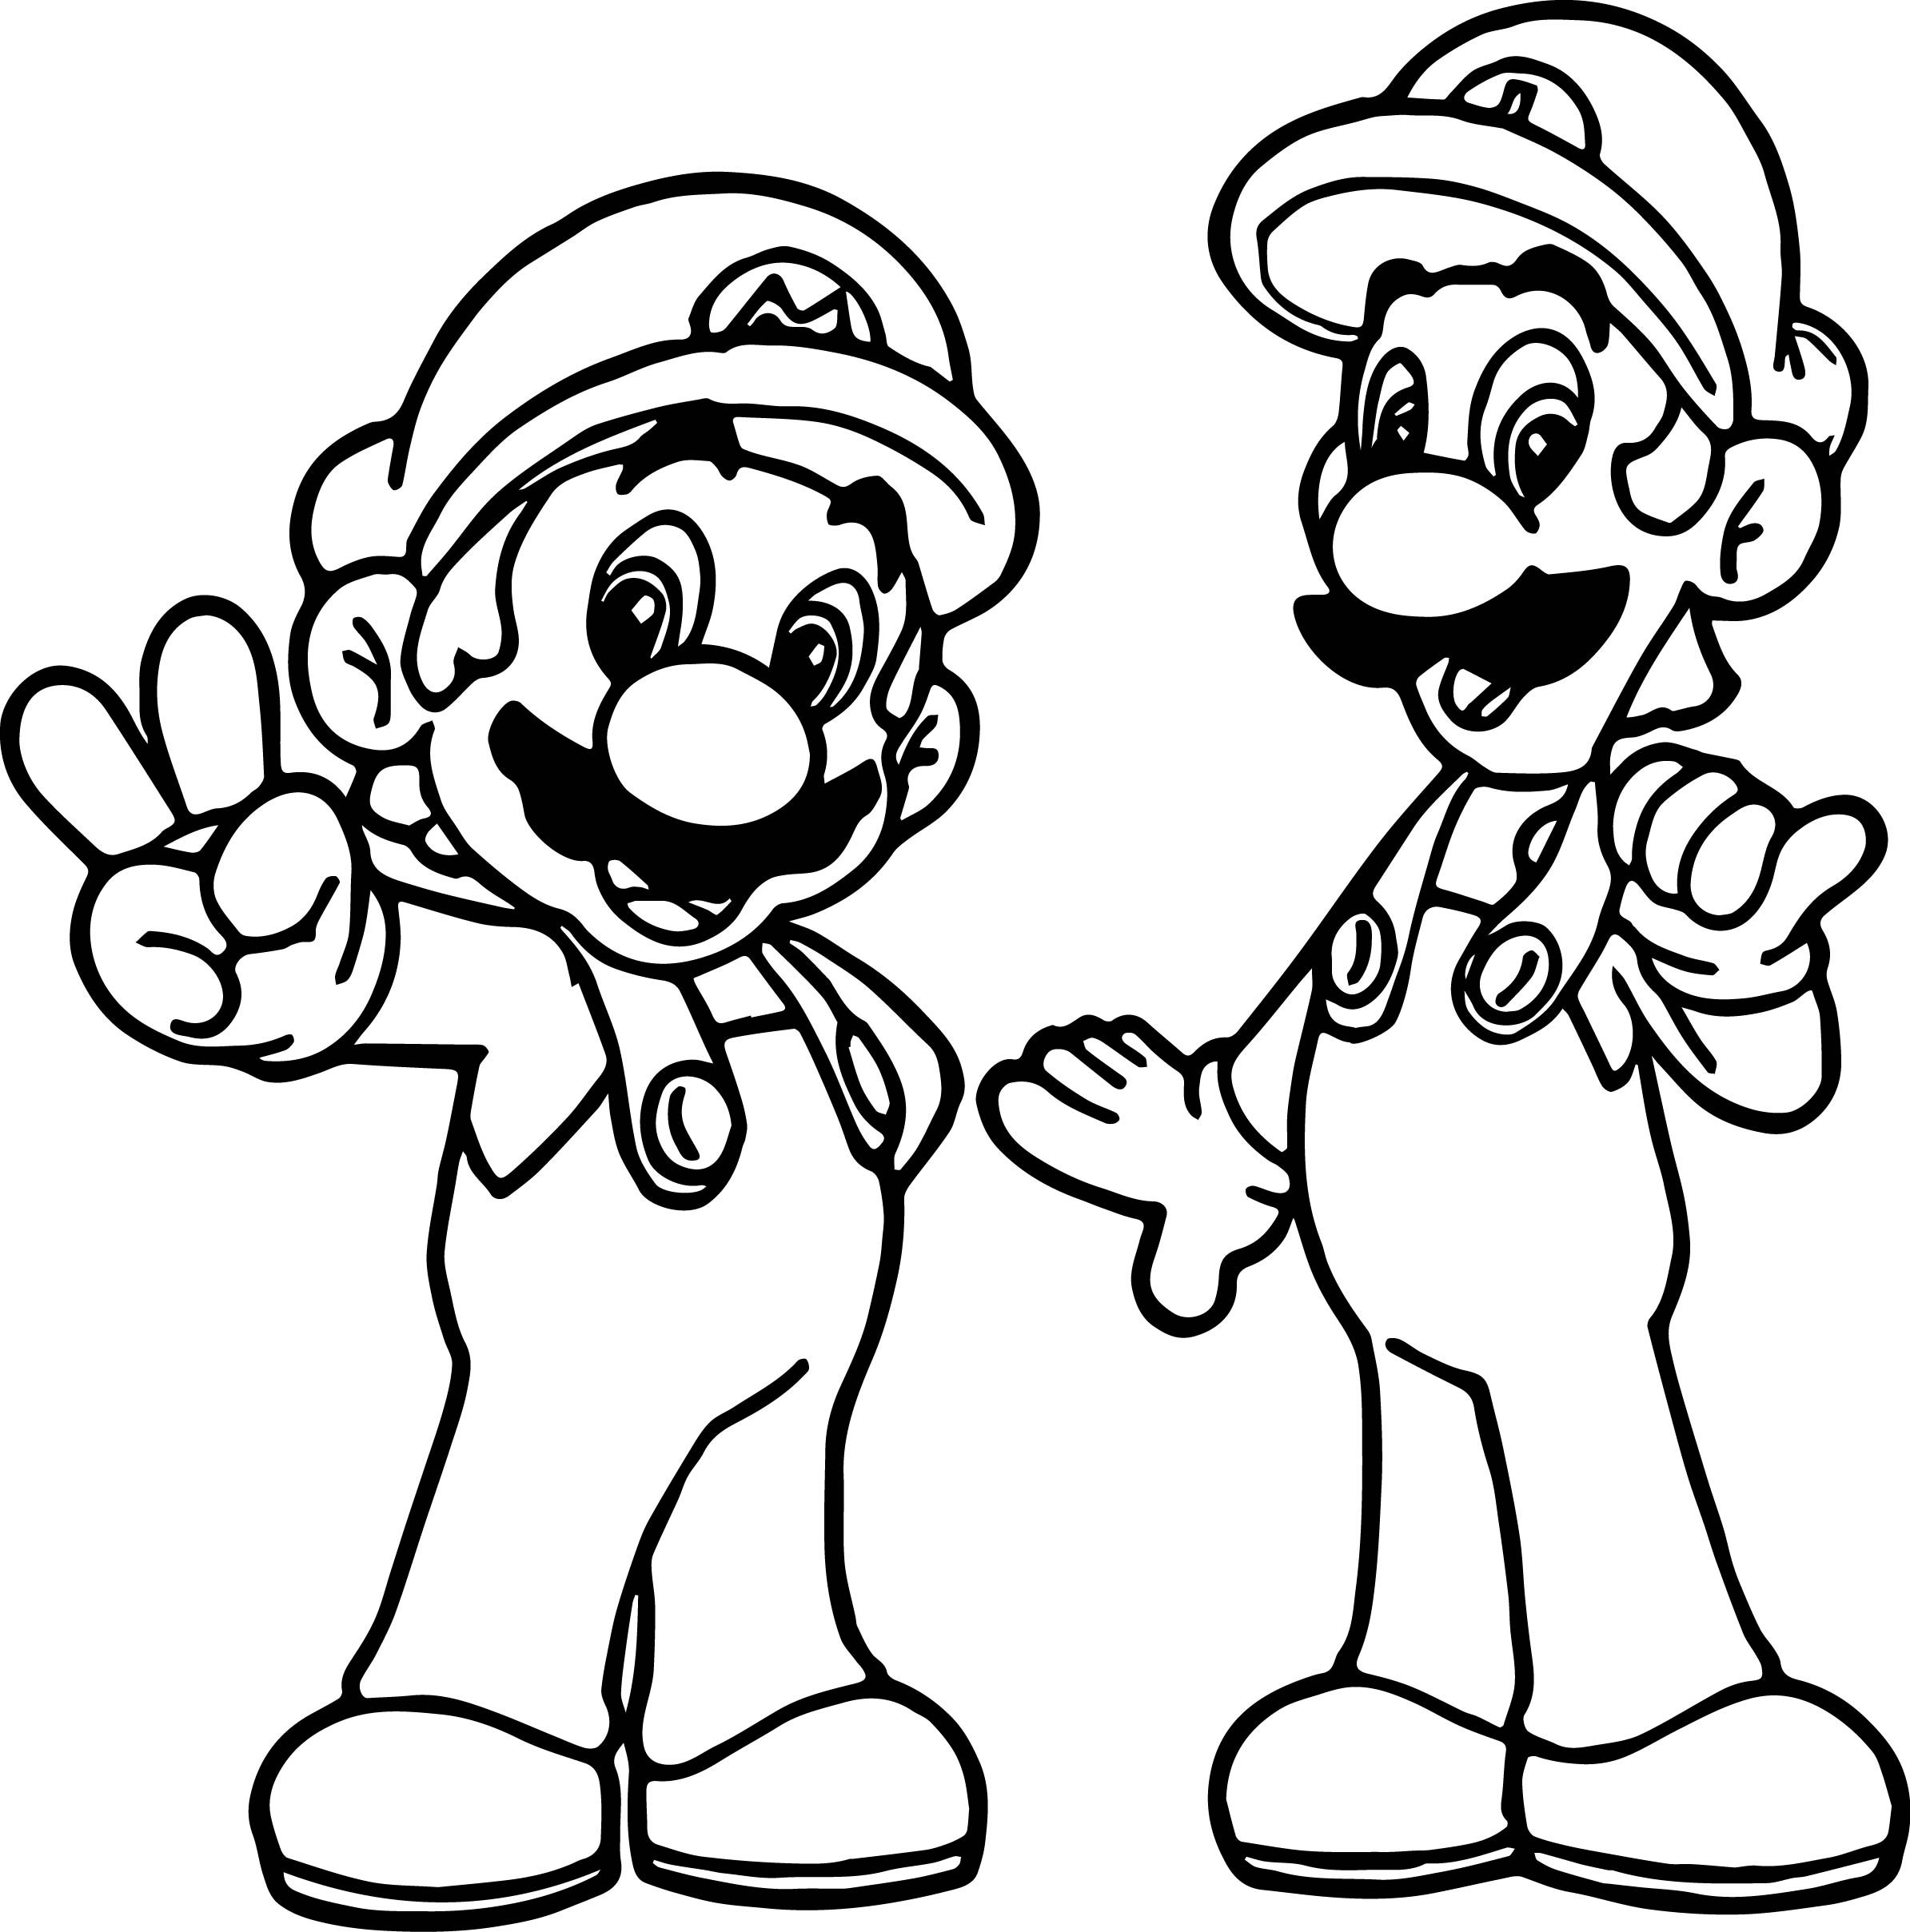 mario turtle coloring pages mario brothers turtle coloring page super mario bros pages mario coloring turtle